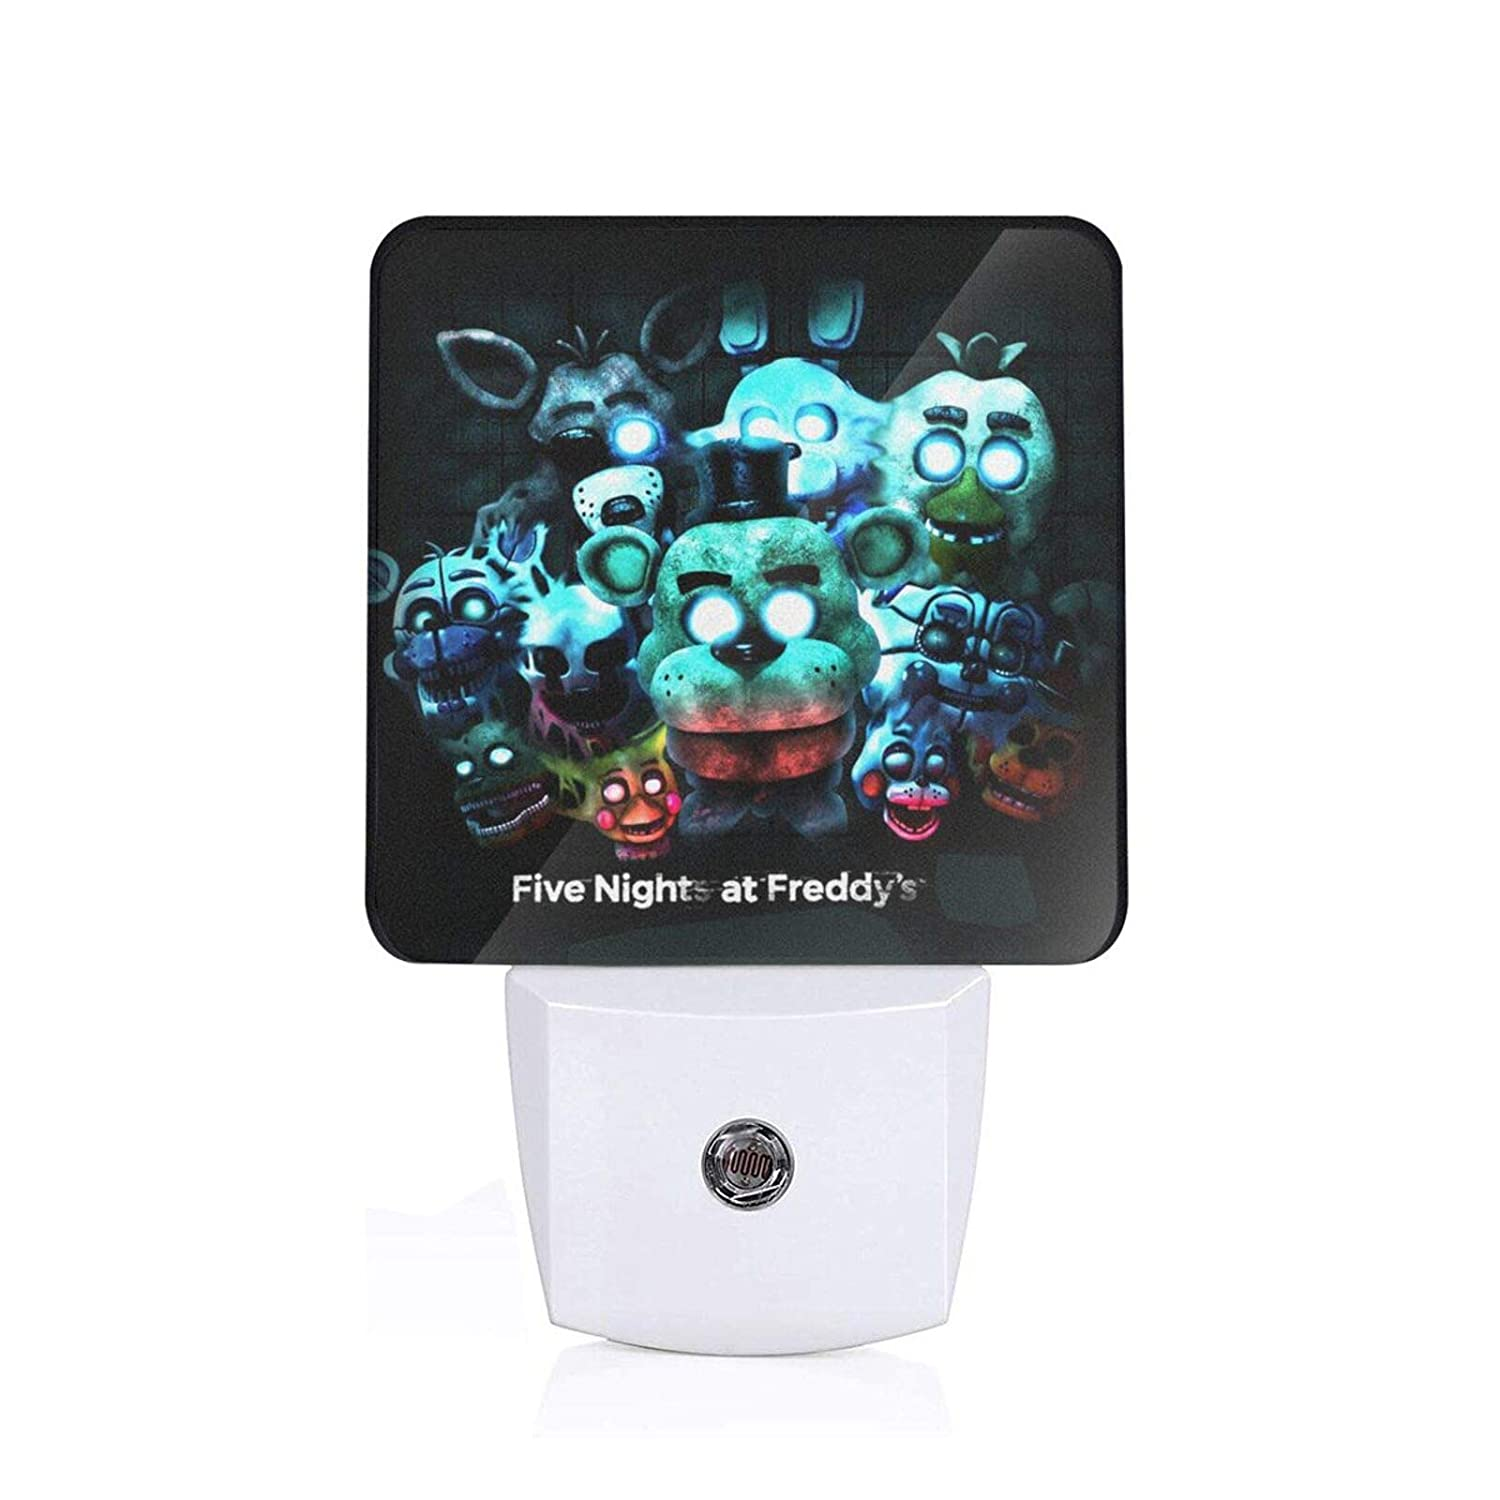 Boeduc Plug in LED Night Light Automatic Sensor Energy Efficient US - Five Nights Freddy